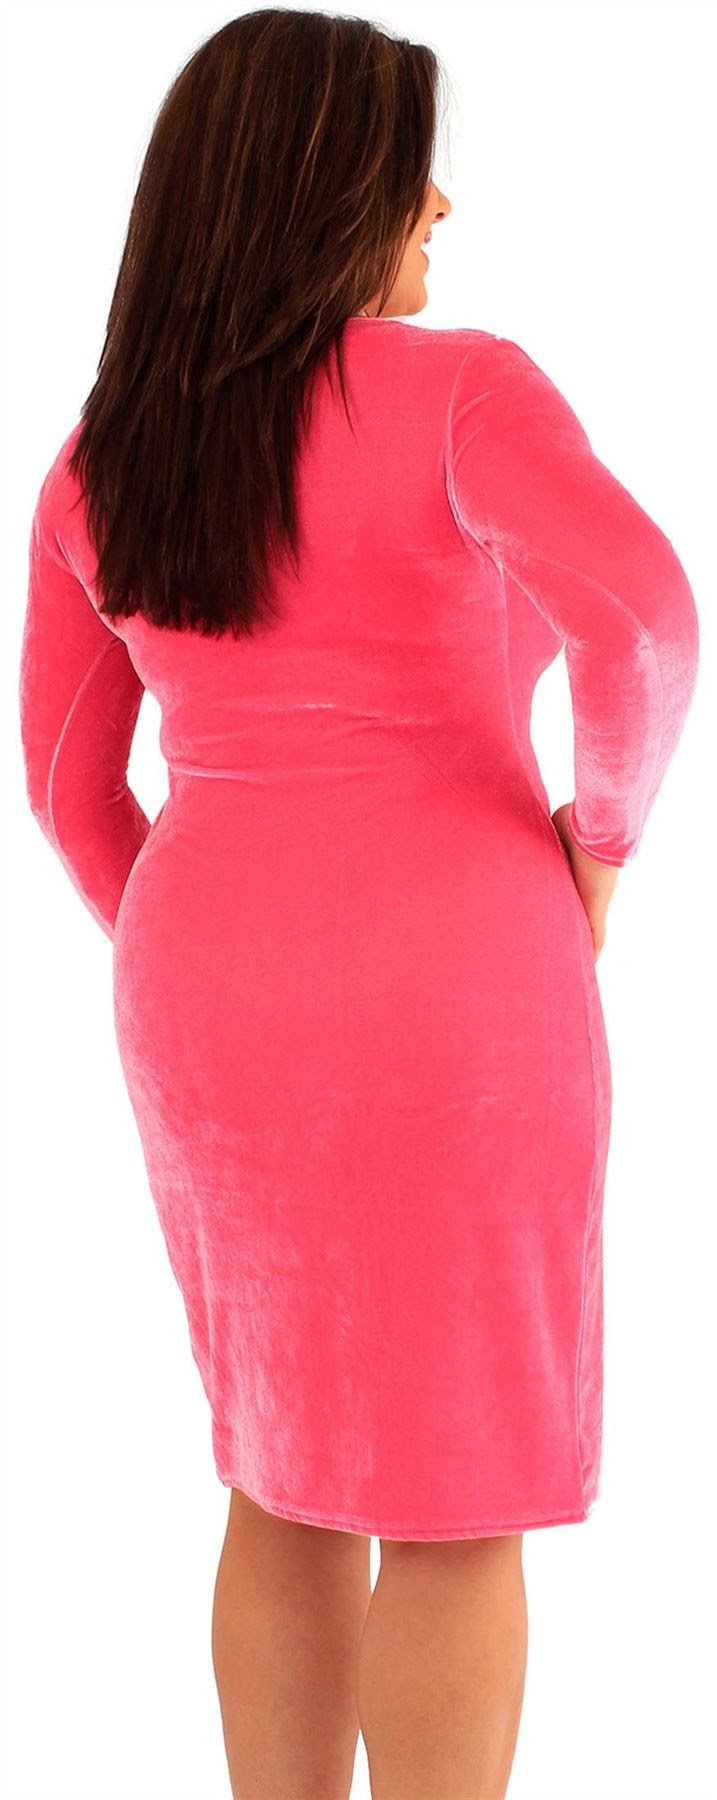 Dresses long plus at gap size women bodycon dropshippers india